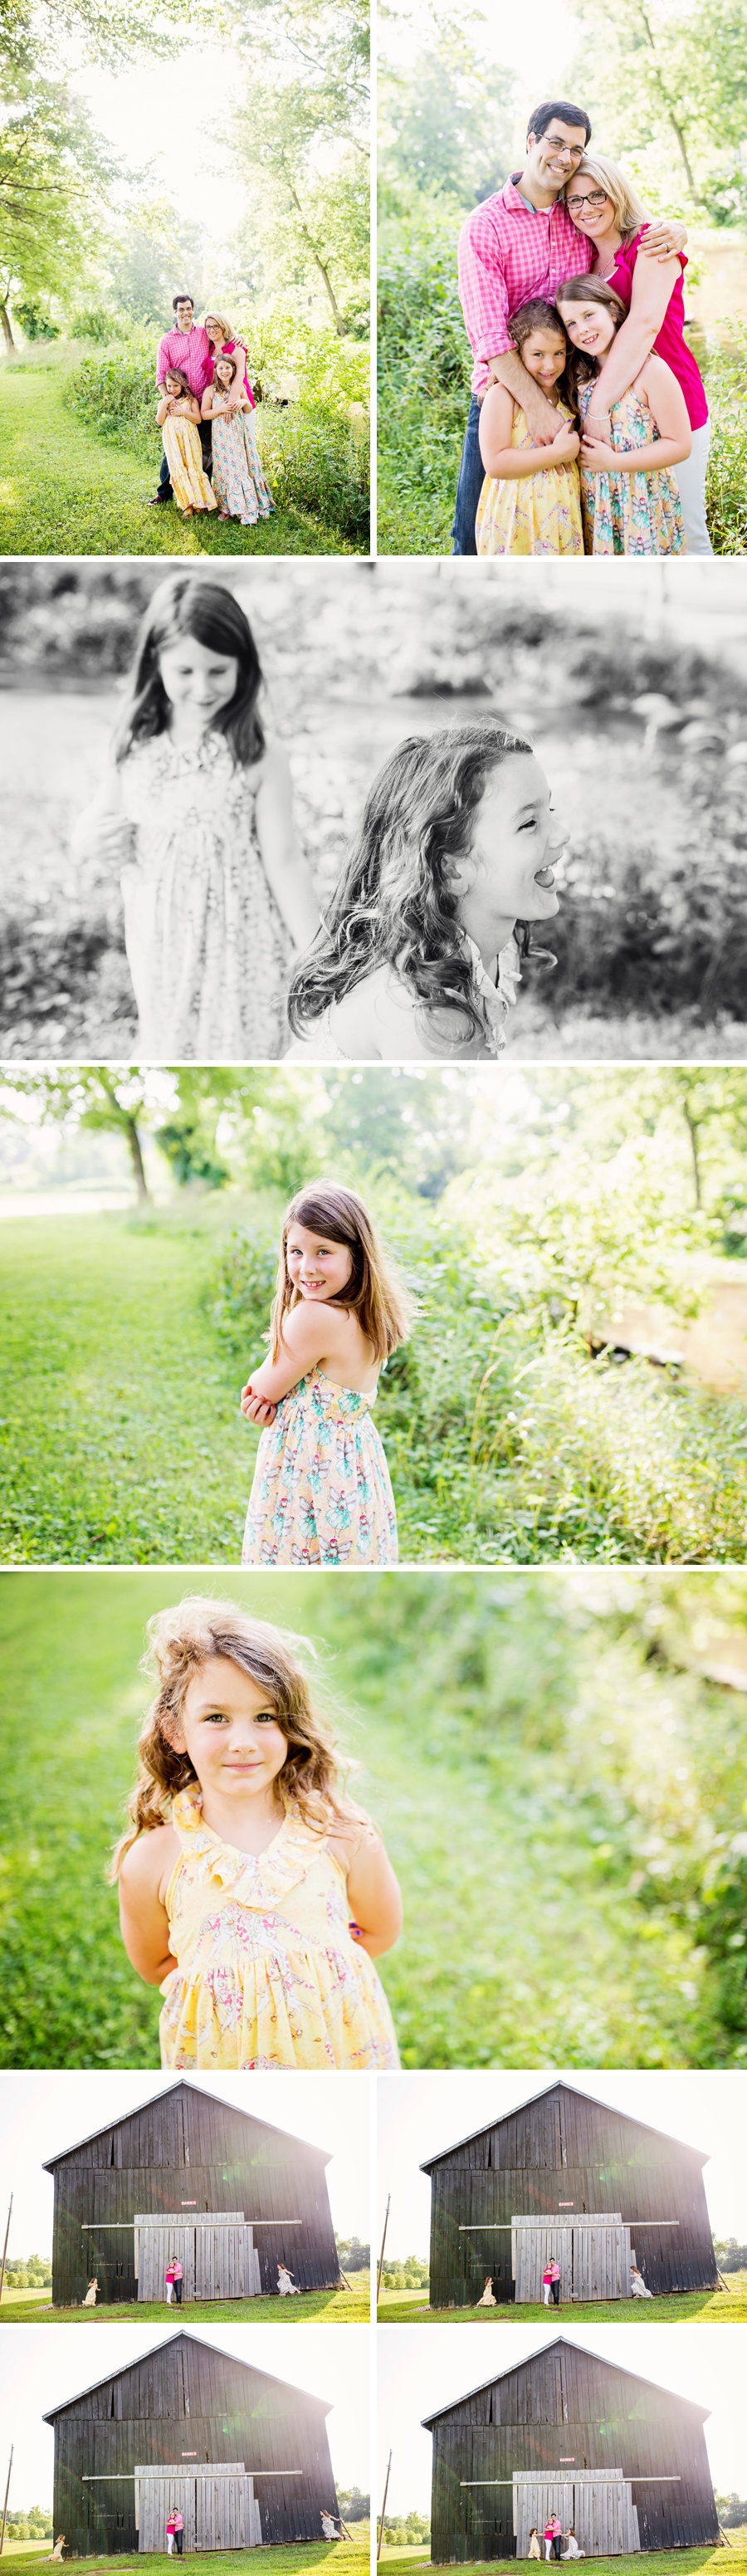 Lexington-Family-PhotographerG008